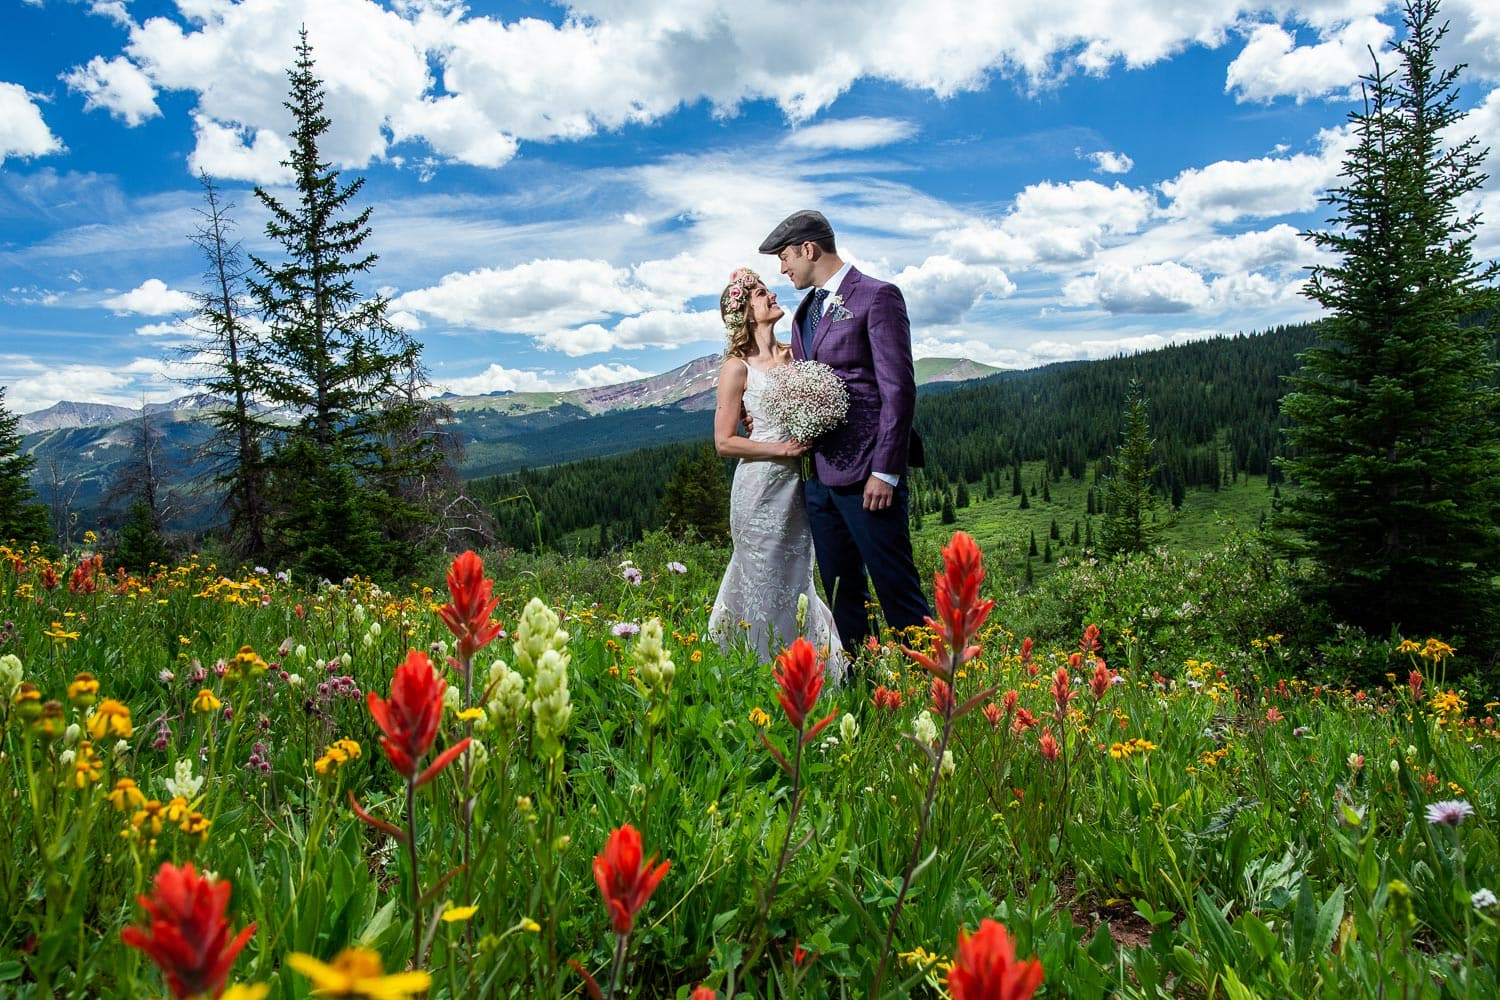 A boho bride and a groom in a purple jacket on the side of a mountain covered in wildflowers.